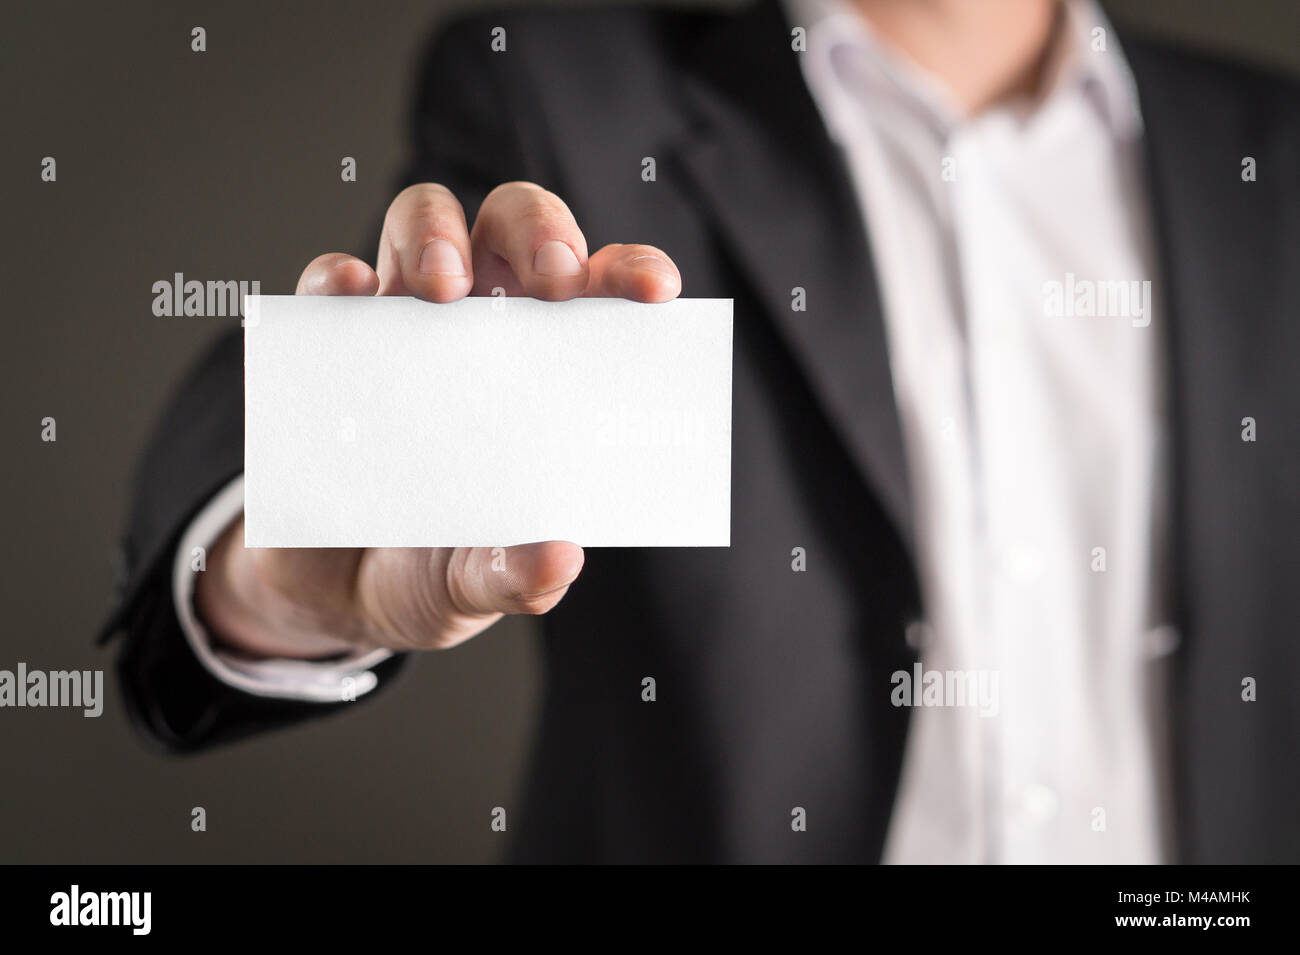 Business man holding empty white business card. - Stock Image